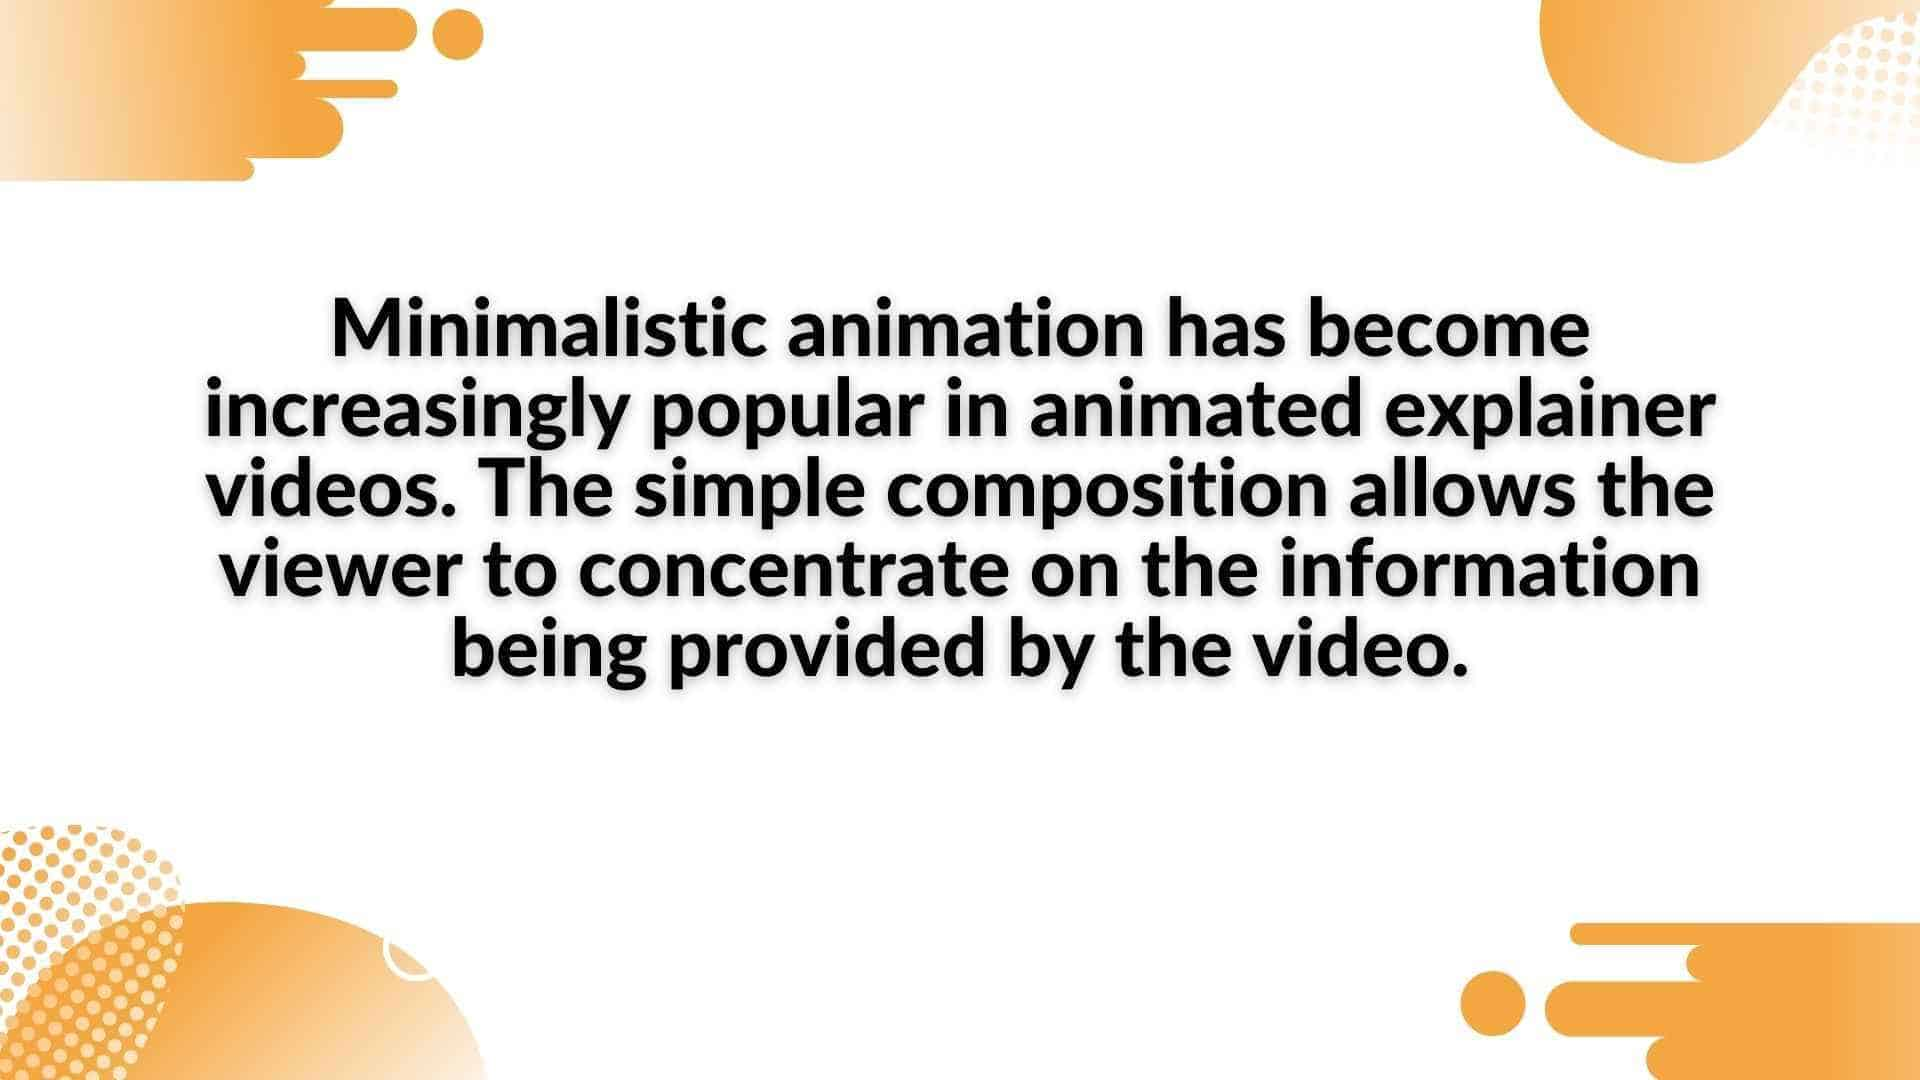 Minimalistic animation has become increasingly popular in animated explainer videos - trends in the world of animation